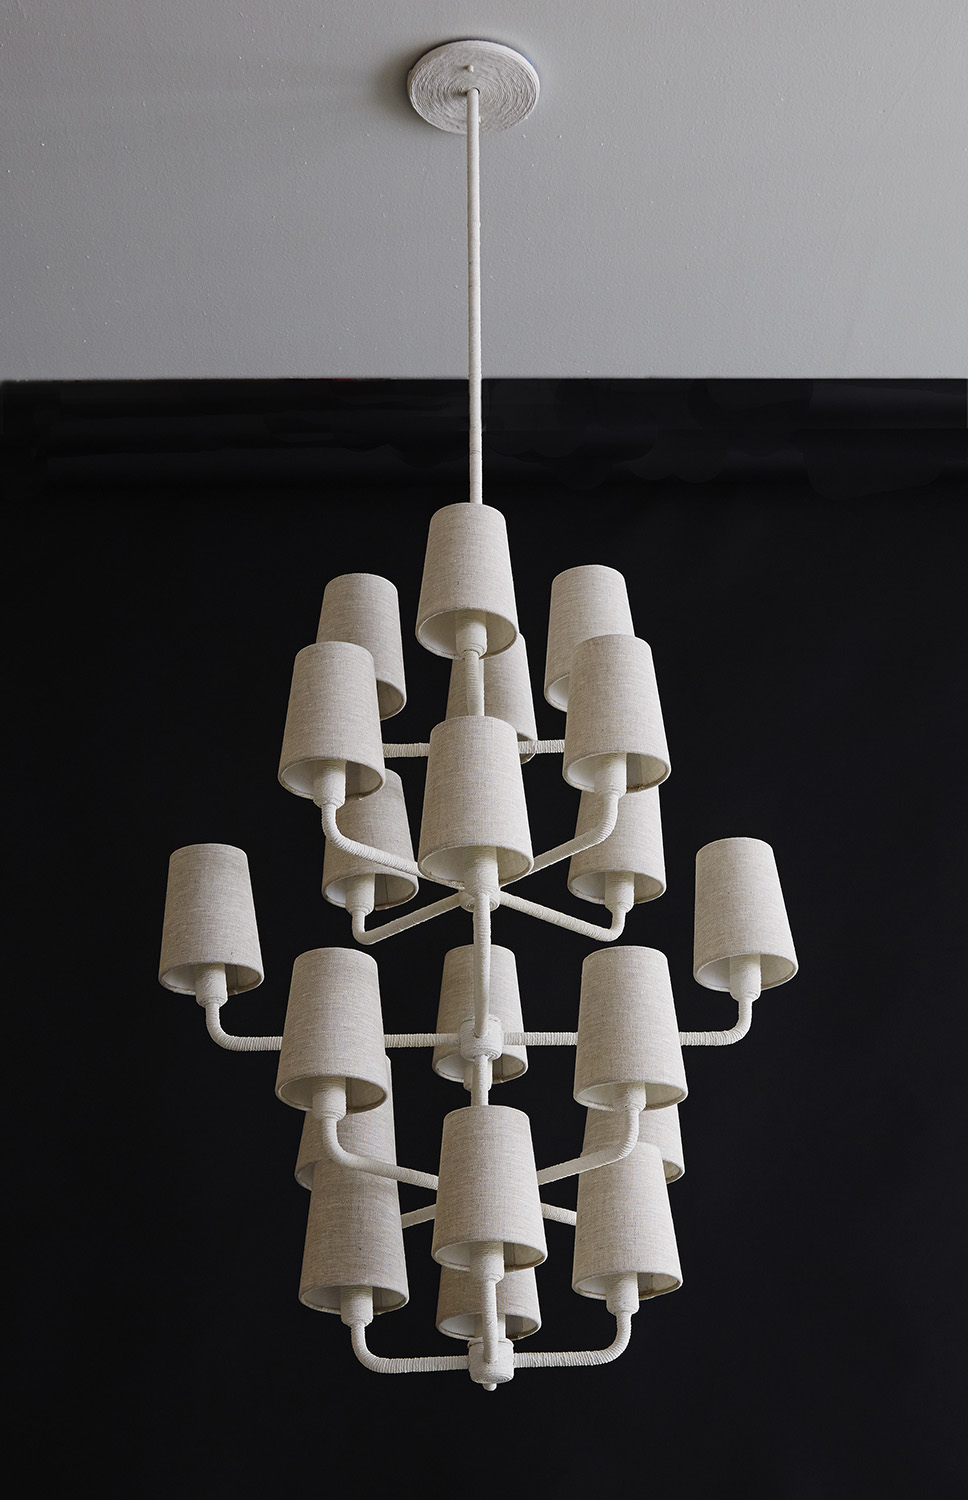 Rope_C-176_5-Tiered Rope Chandelier_White_Wheat.jpg